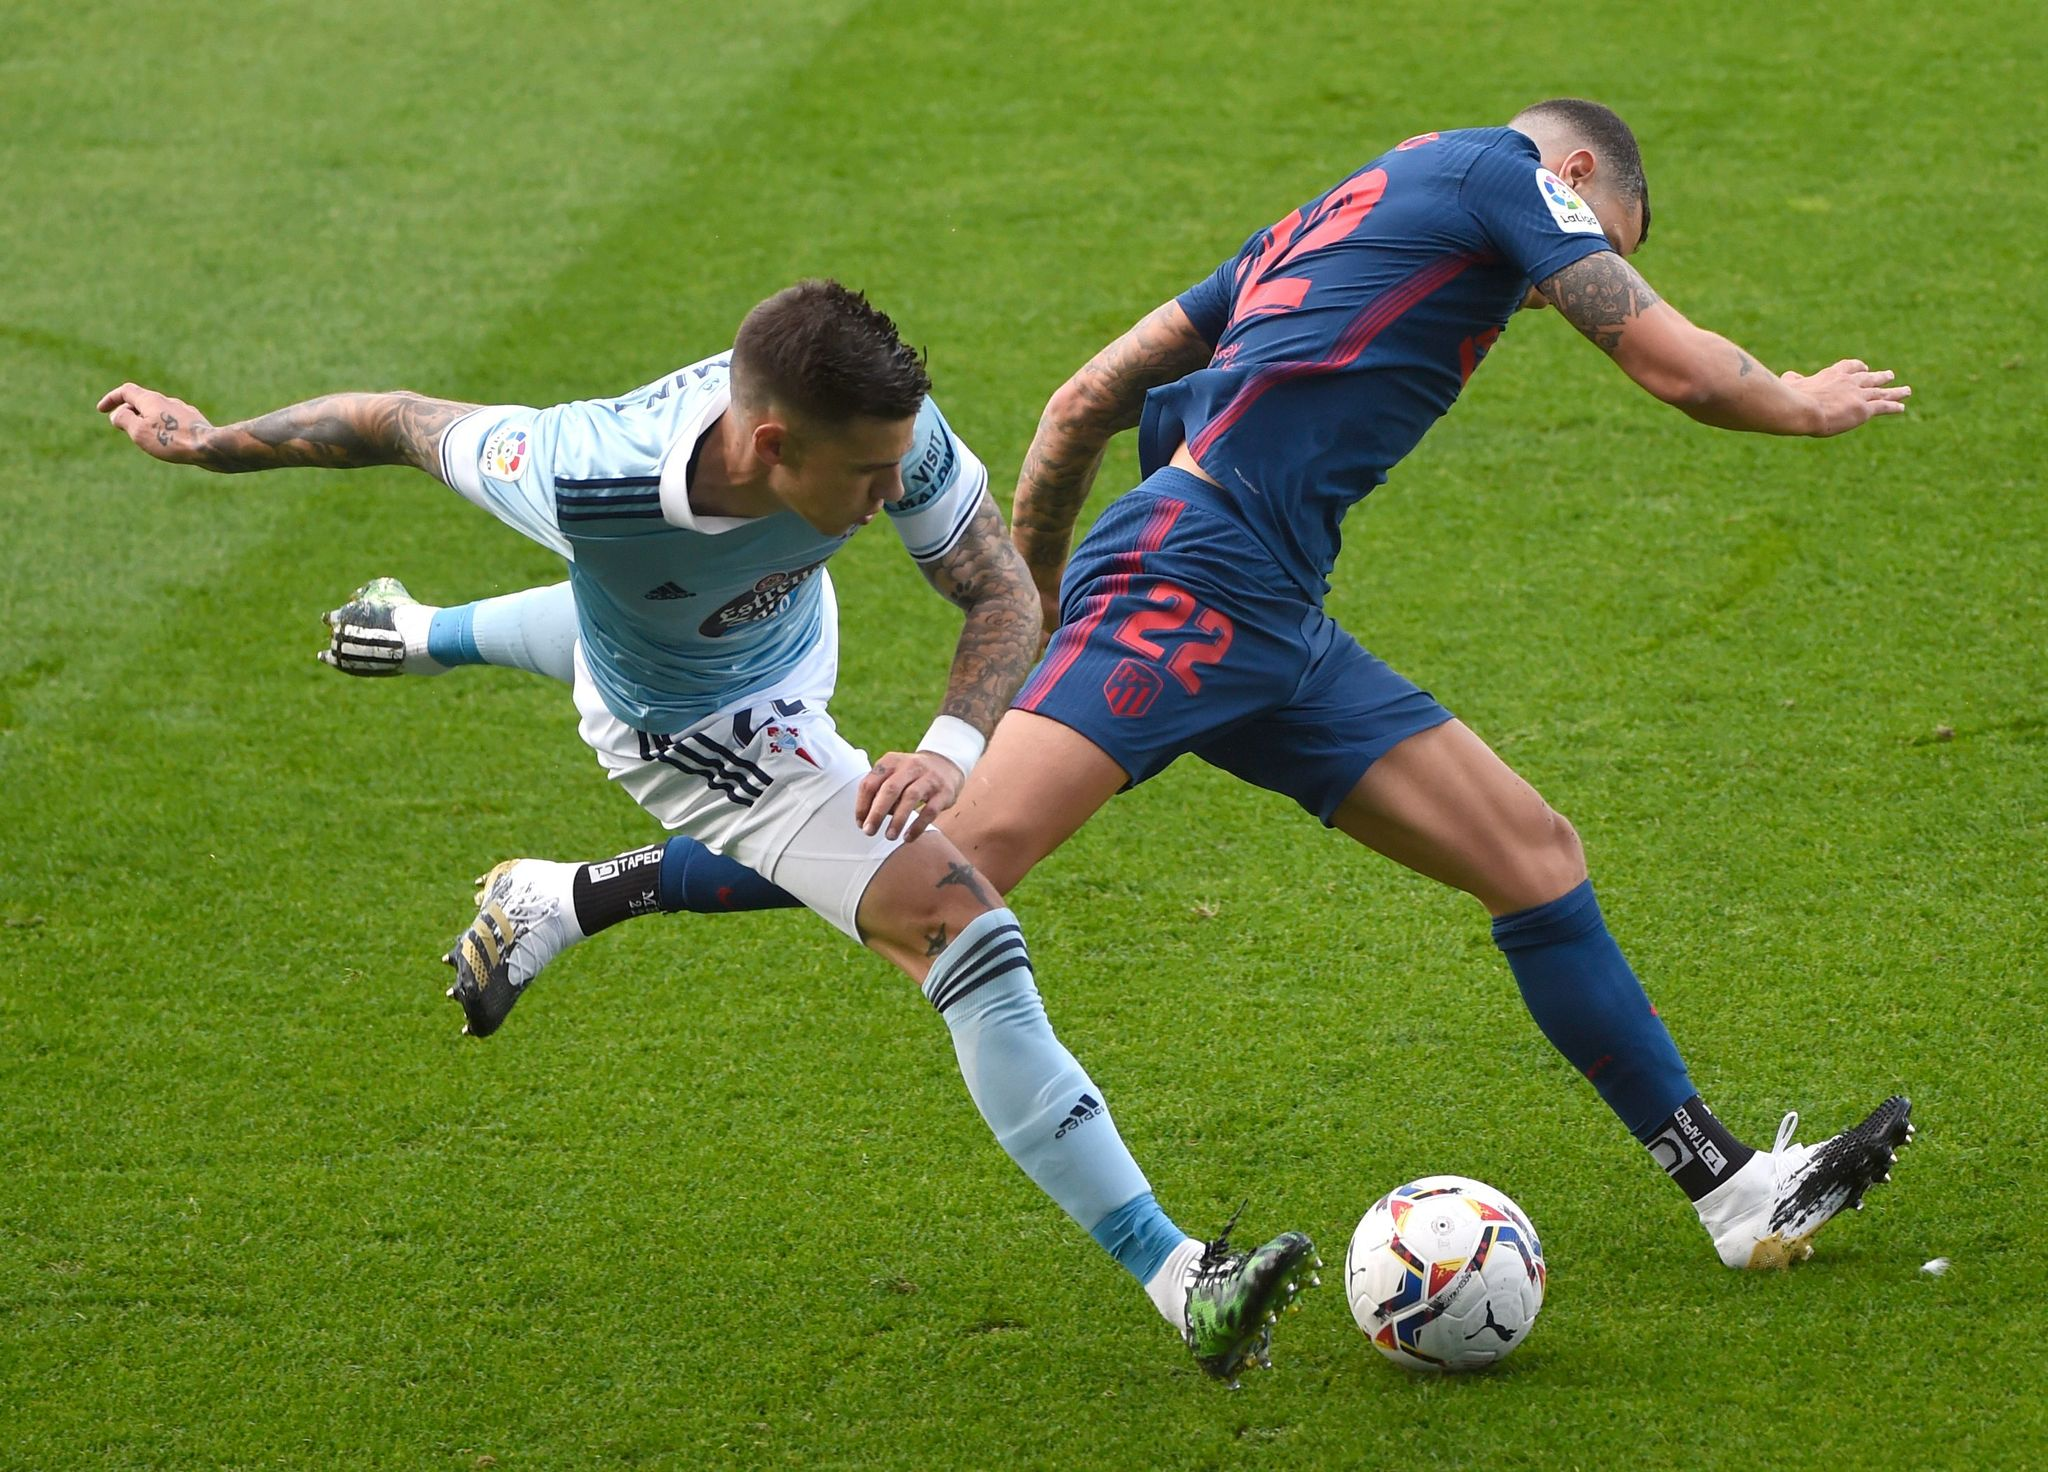 Celta Vigos Spanish forward Santi Mina (L) vies with Atletico Madrids Spanish defender Mario lt;HIT gt;Hermoso lt;/HIT gt; during the Spanish League football match between Celta Vigo and Atletico Madrid at the Balaidos stadium in Vigo on October 17, 2020. (Photo by MIGUEL RIOPA / AFP)